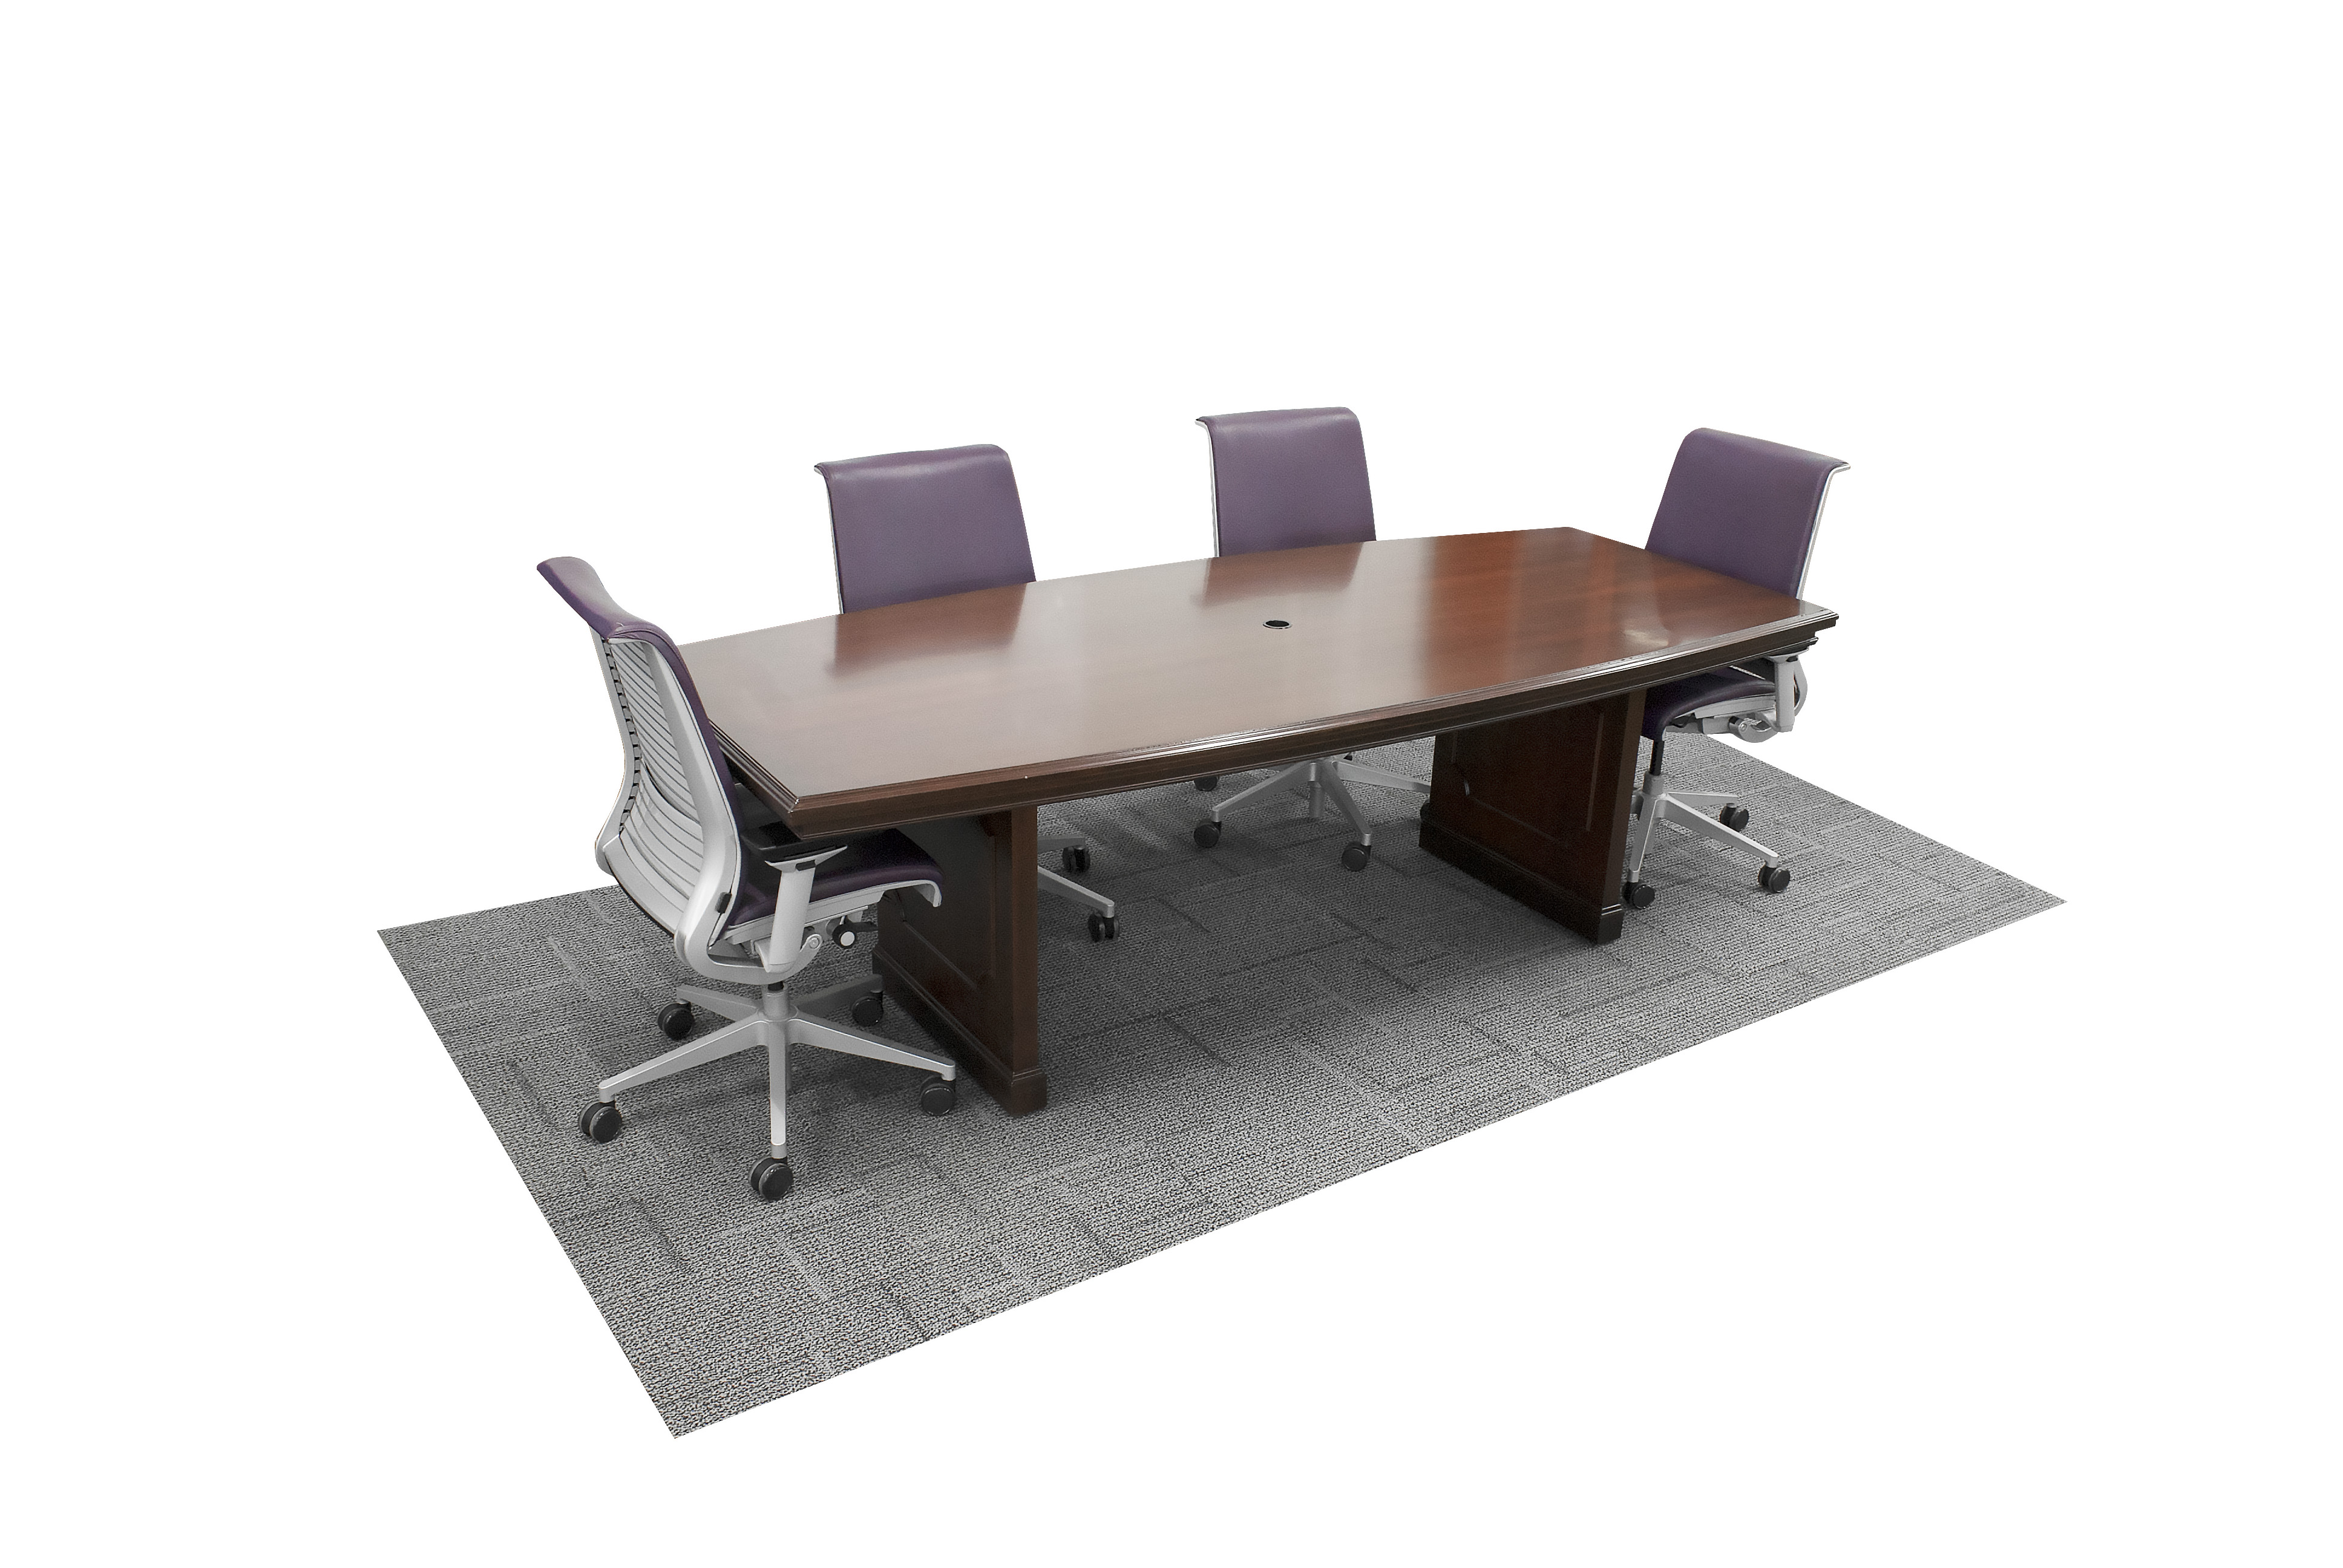 Long Wood Desk 8 Traditional Wood Boat Shaped Conference Table